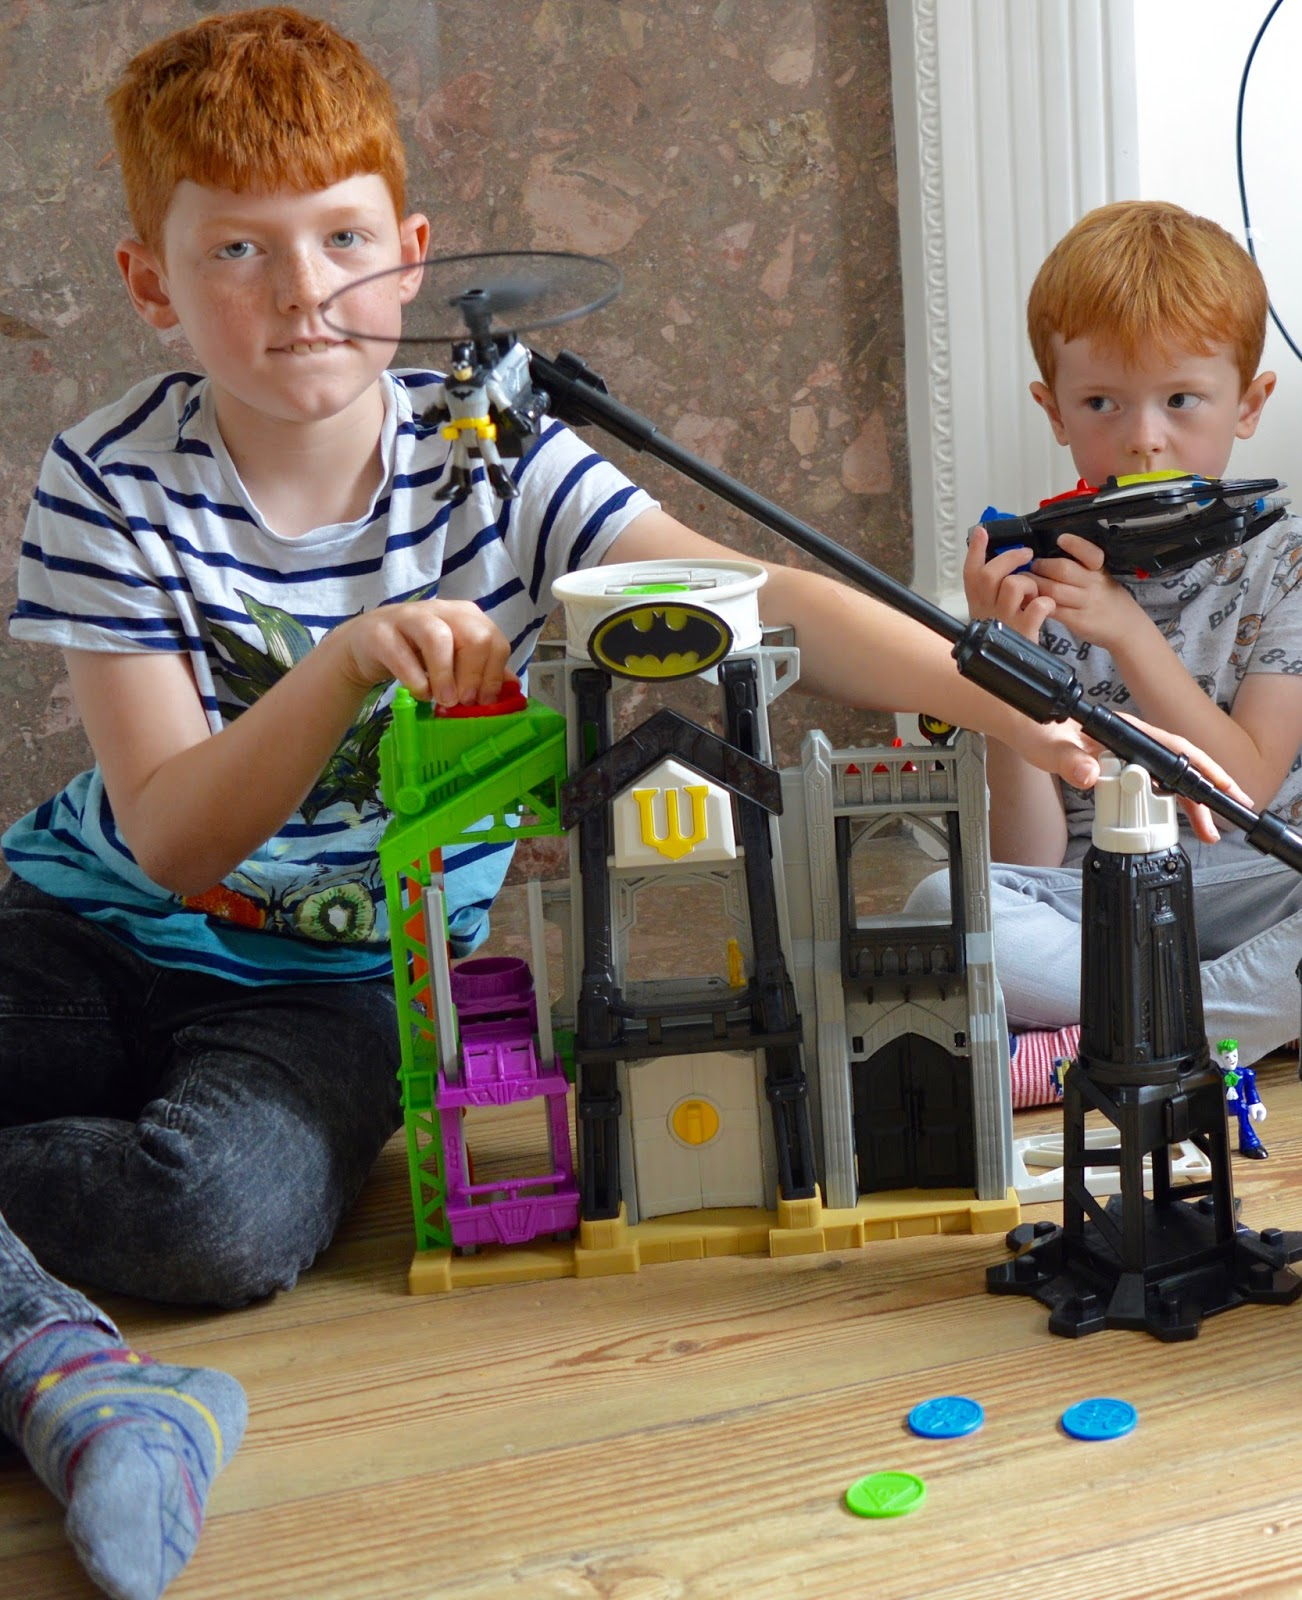 Fisher-Price Imaginext Super-Flight Gotham City | Batman Playset - A Review - Batman flying